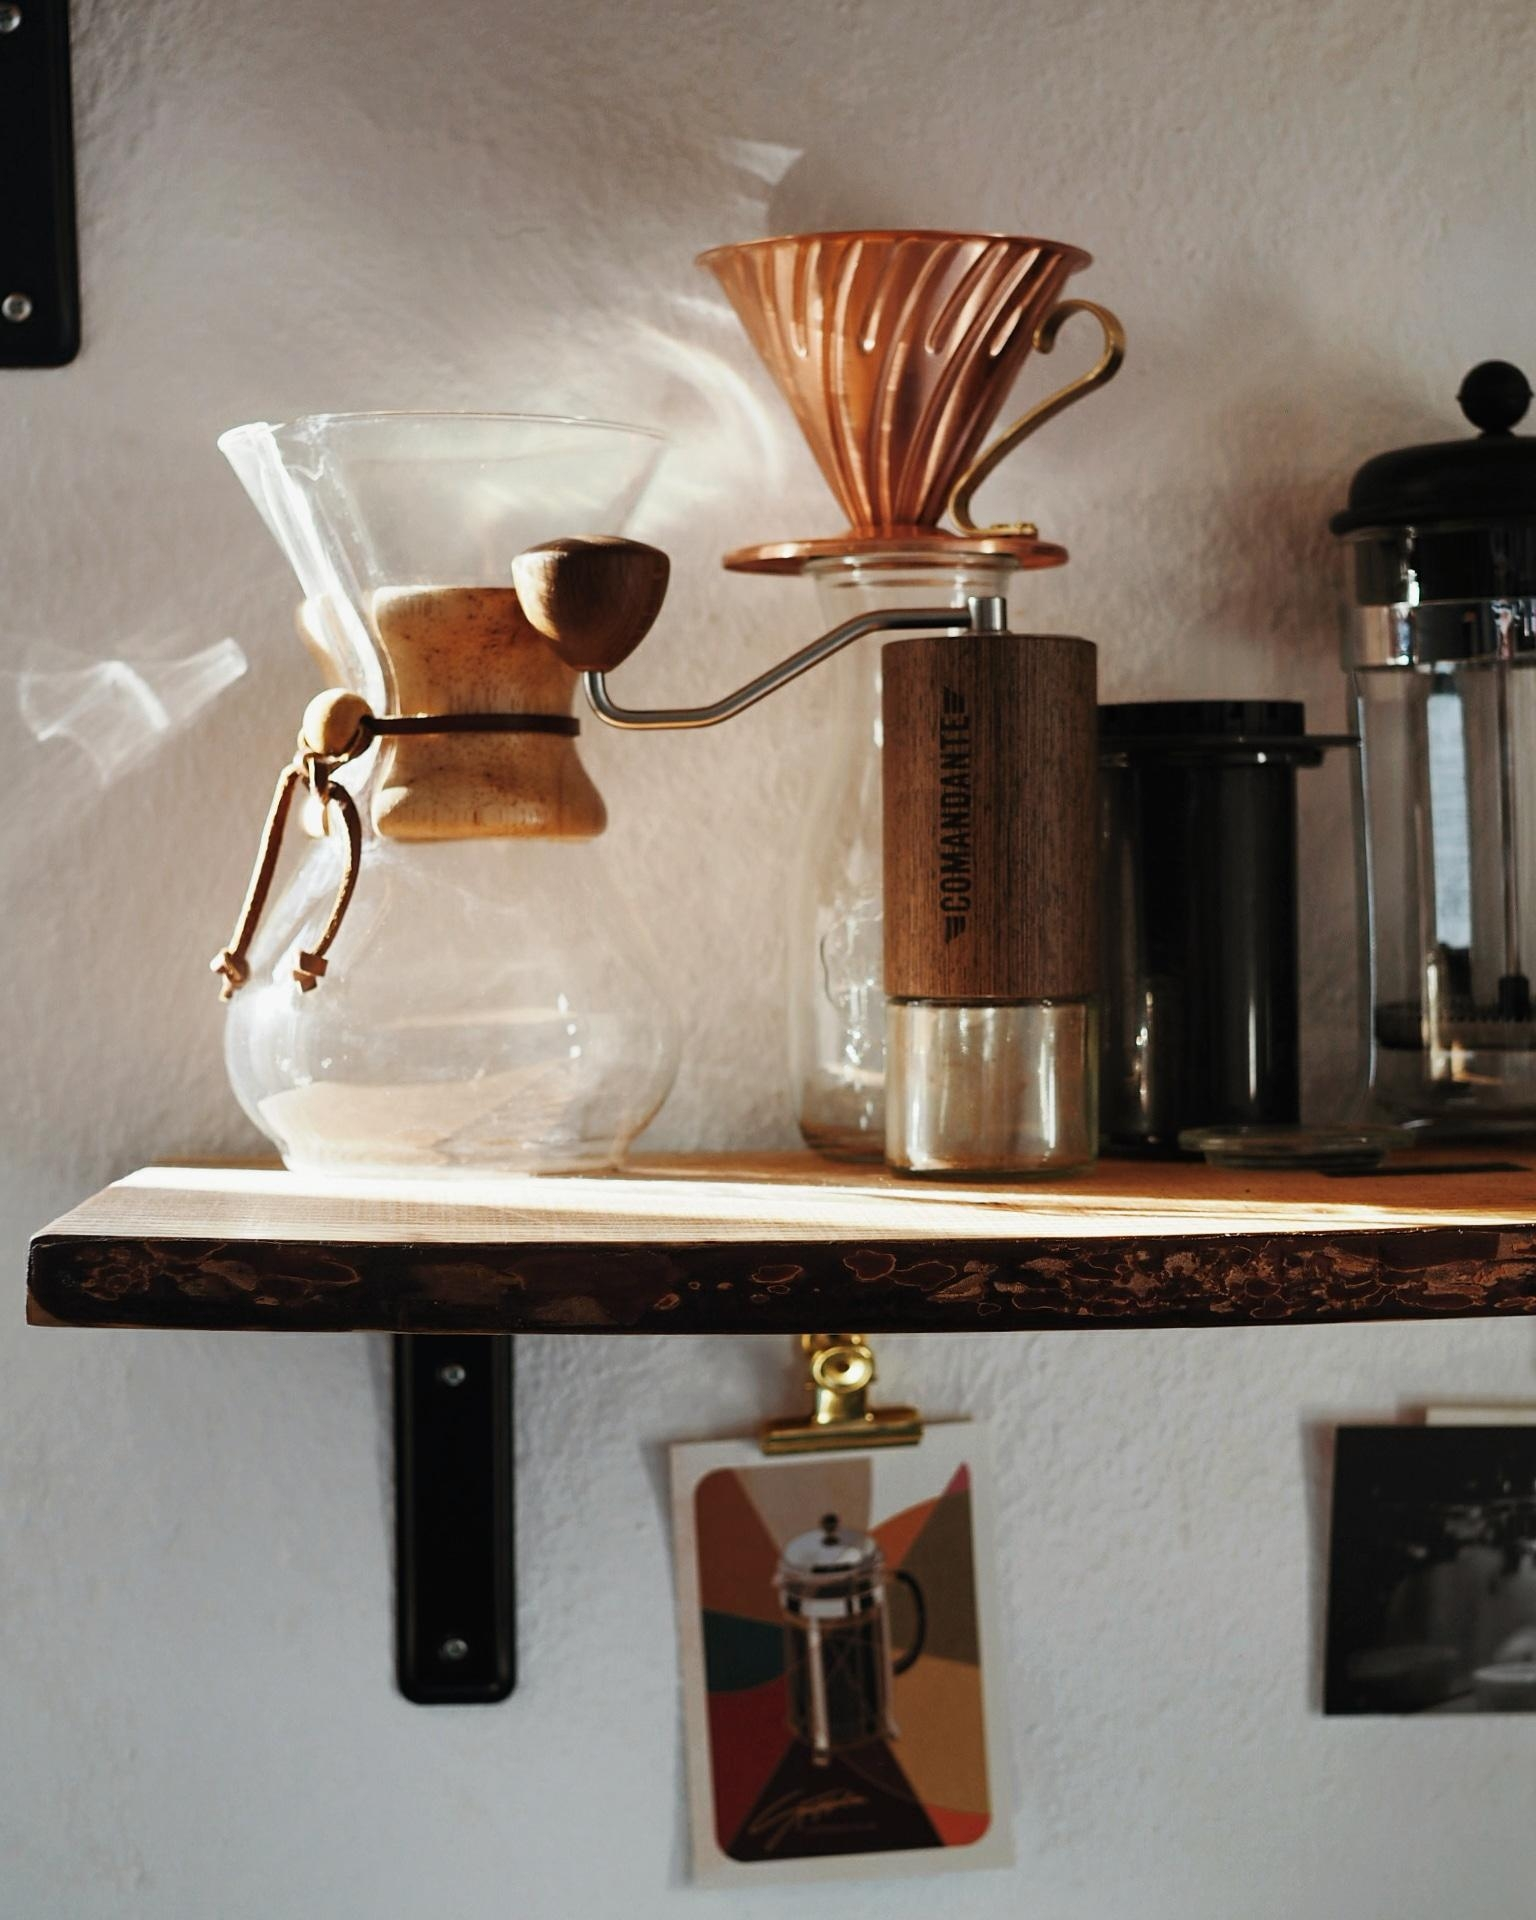 Everyday is a coffee day.